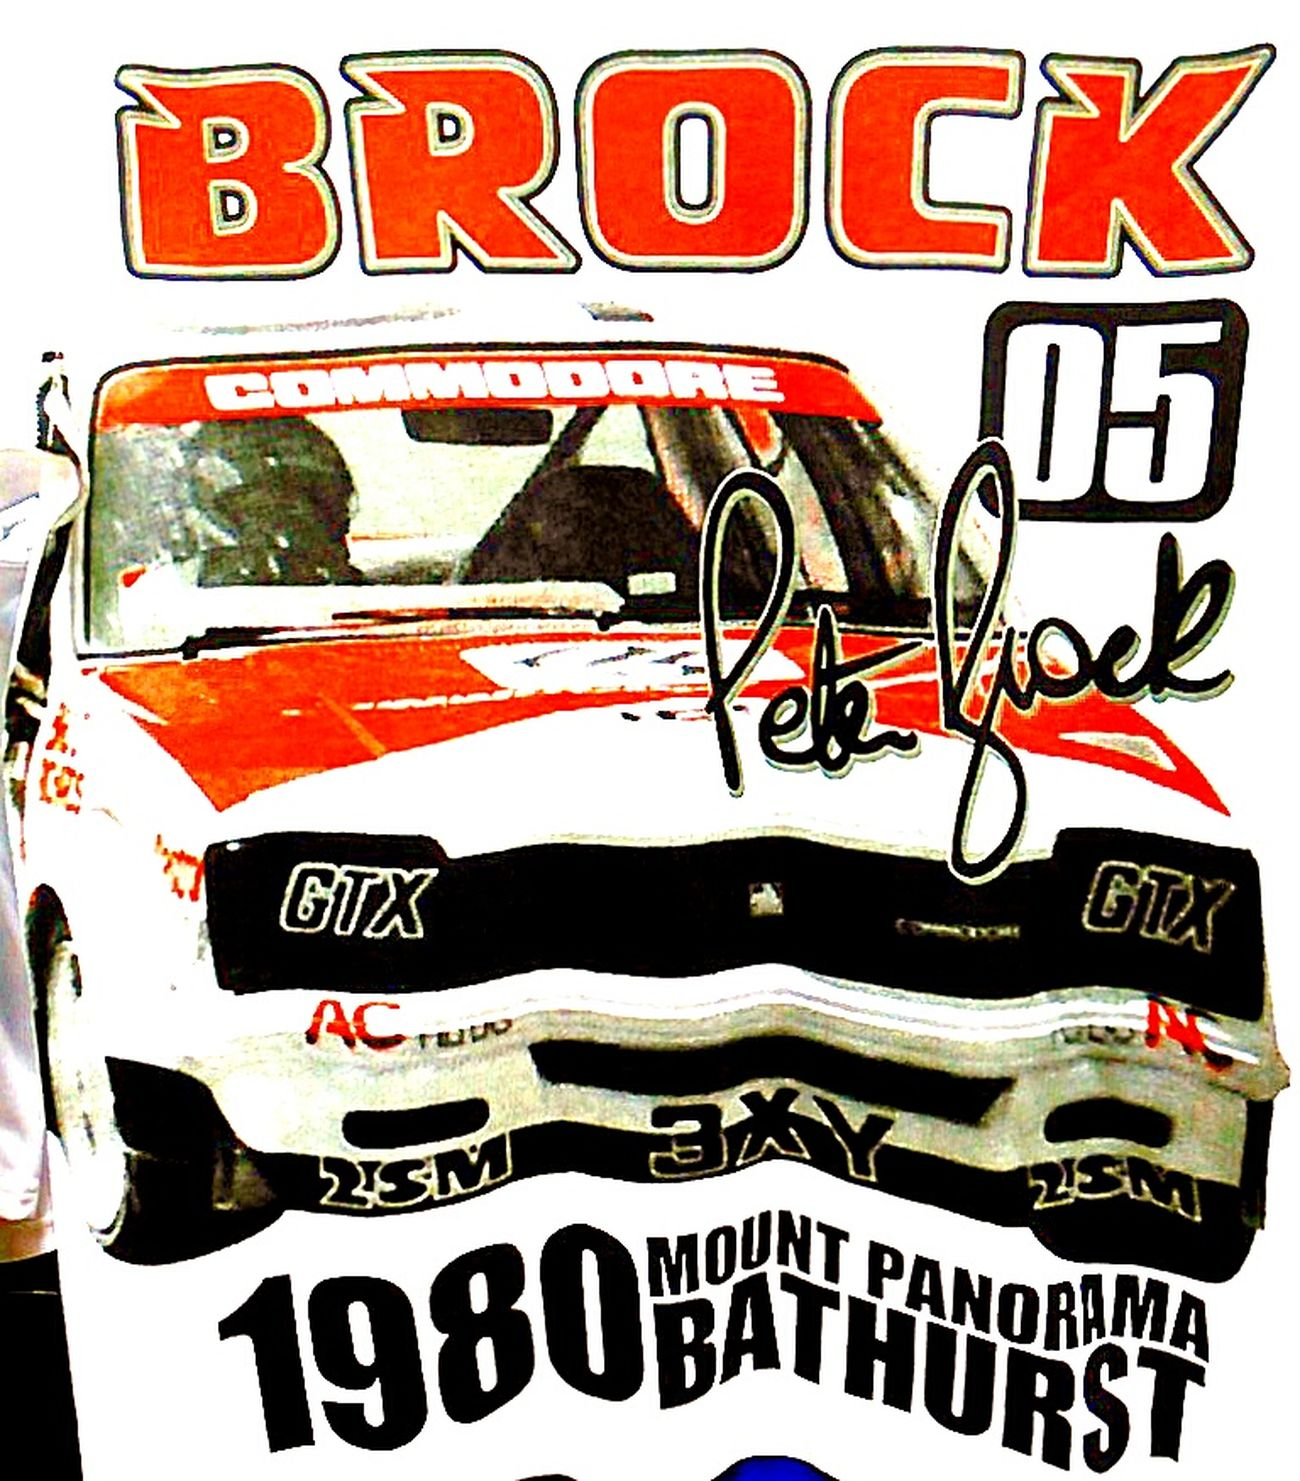 Peter Brock Holden Commodore General Motors Holden T Shirts 05 T Shirt Tshirt Peter Brock, R.i.p. Bathurst Mount Panorama T Shirt Collection T Shirt Tee Shirt Tshirts Car Motorsports Cars 1980 Tshirtcollection Tshirtoftheday T Shirt Design Car Racing Brock Motorsport